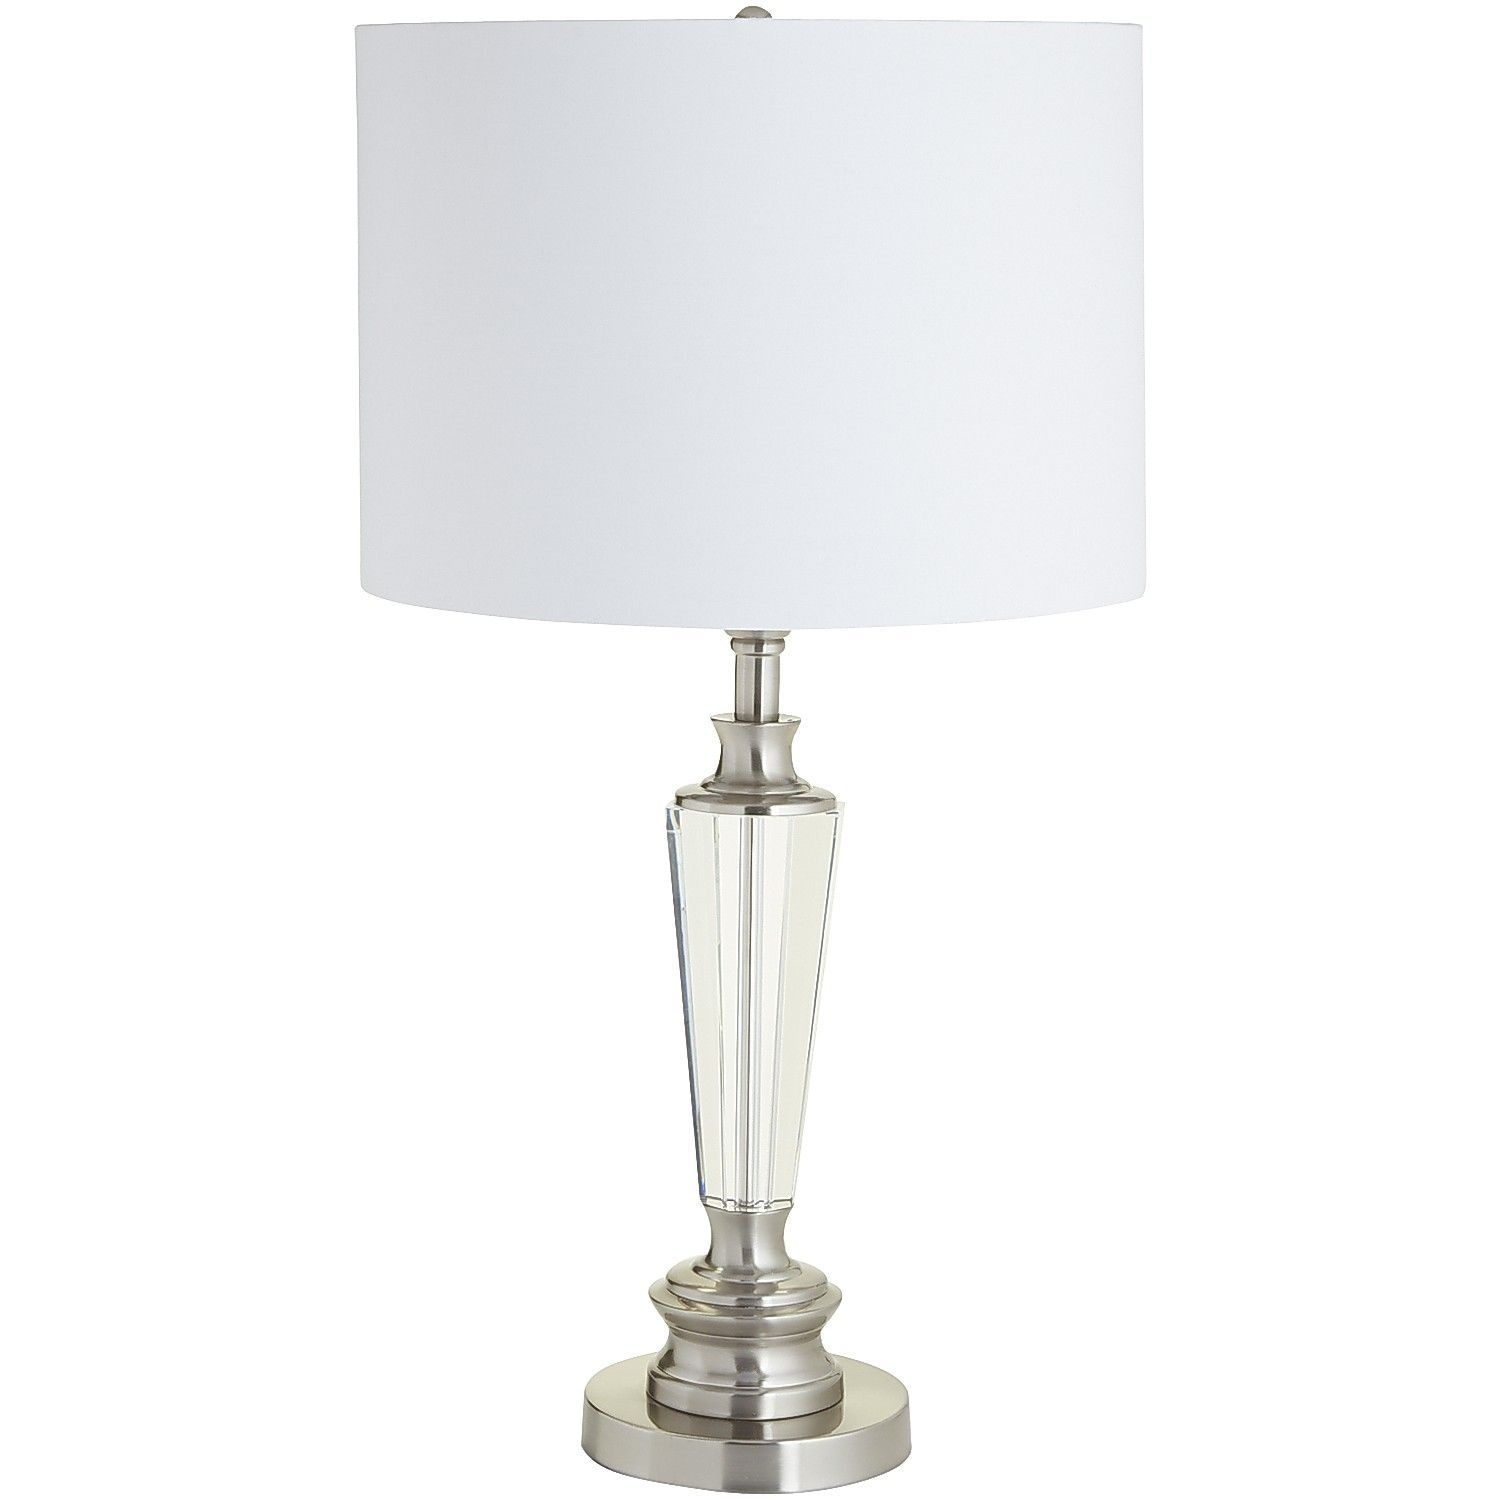 Silver chatham crystal table lamp nickel cast iron lamps silver chatham crystal table lamp nickel cast iron geotapseo Images